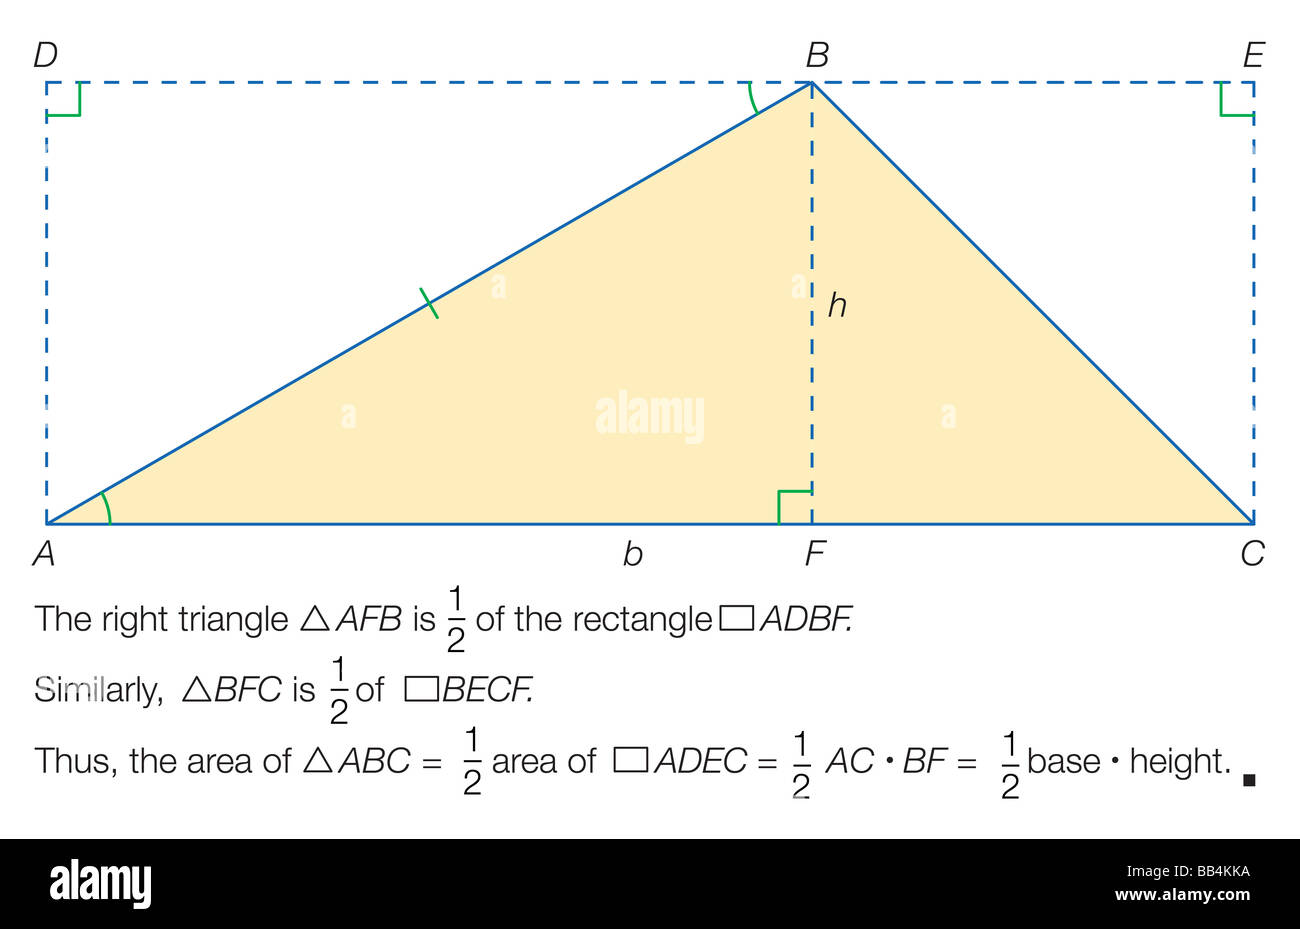 Proof that the area of a triangle = 1/2 base x height. - Stock Image